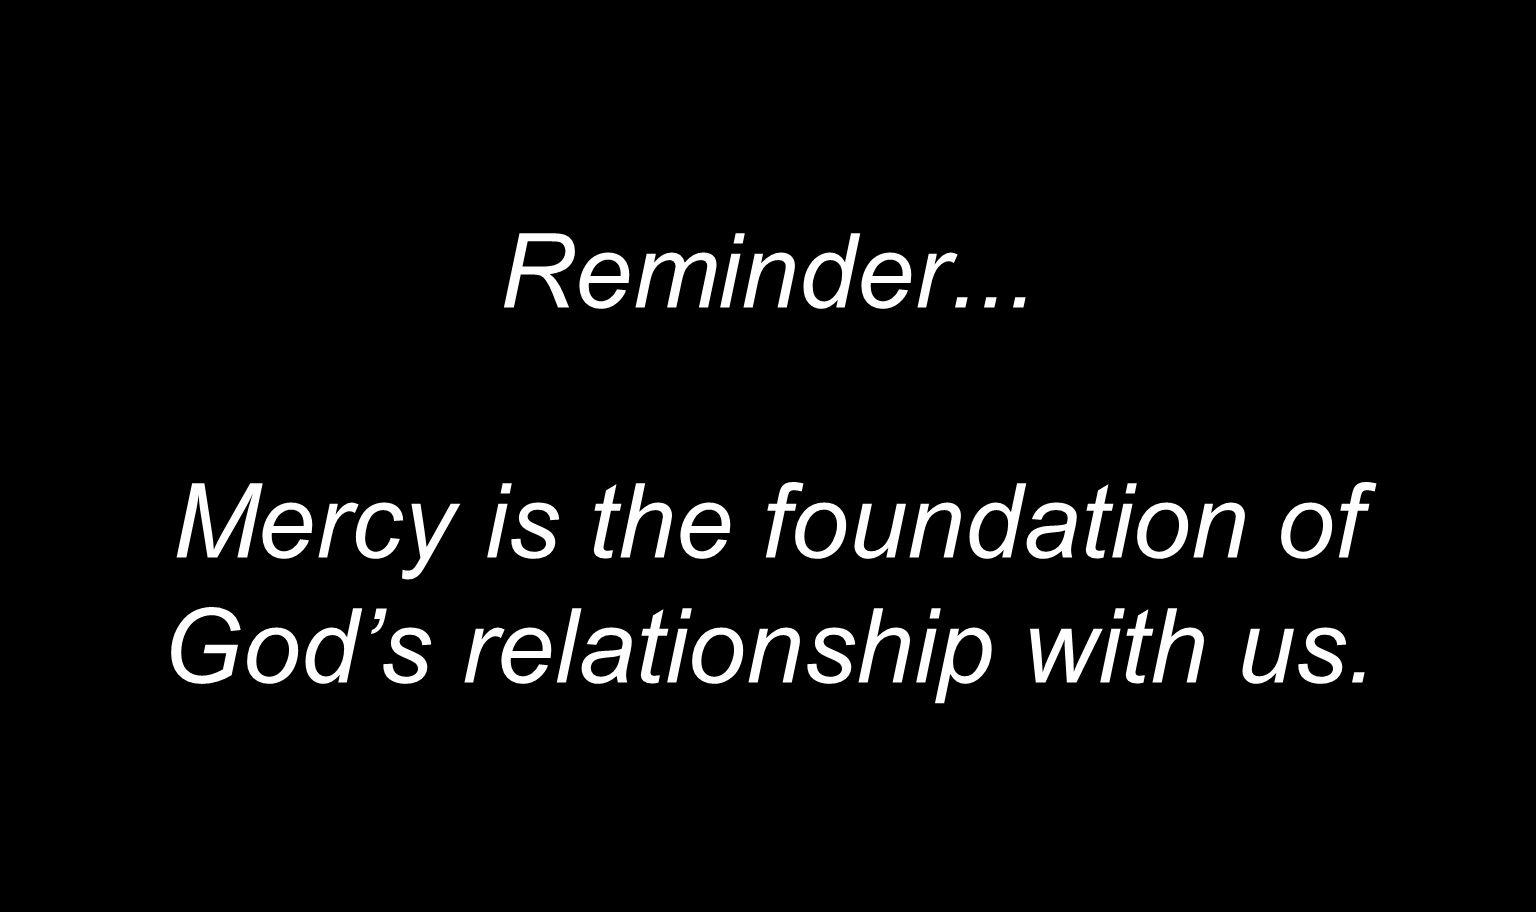 Reminder... Mercy is the foundation of God's relationship with us.